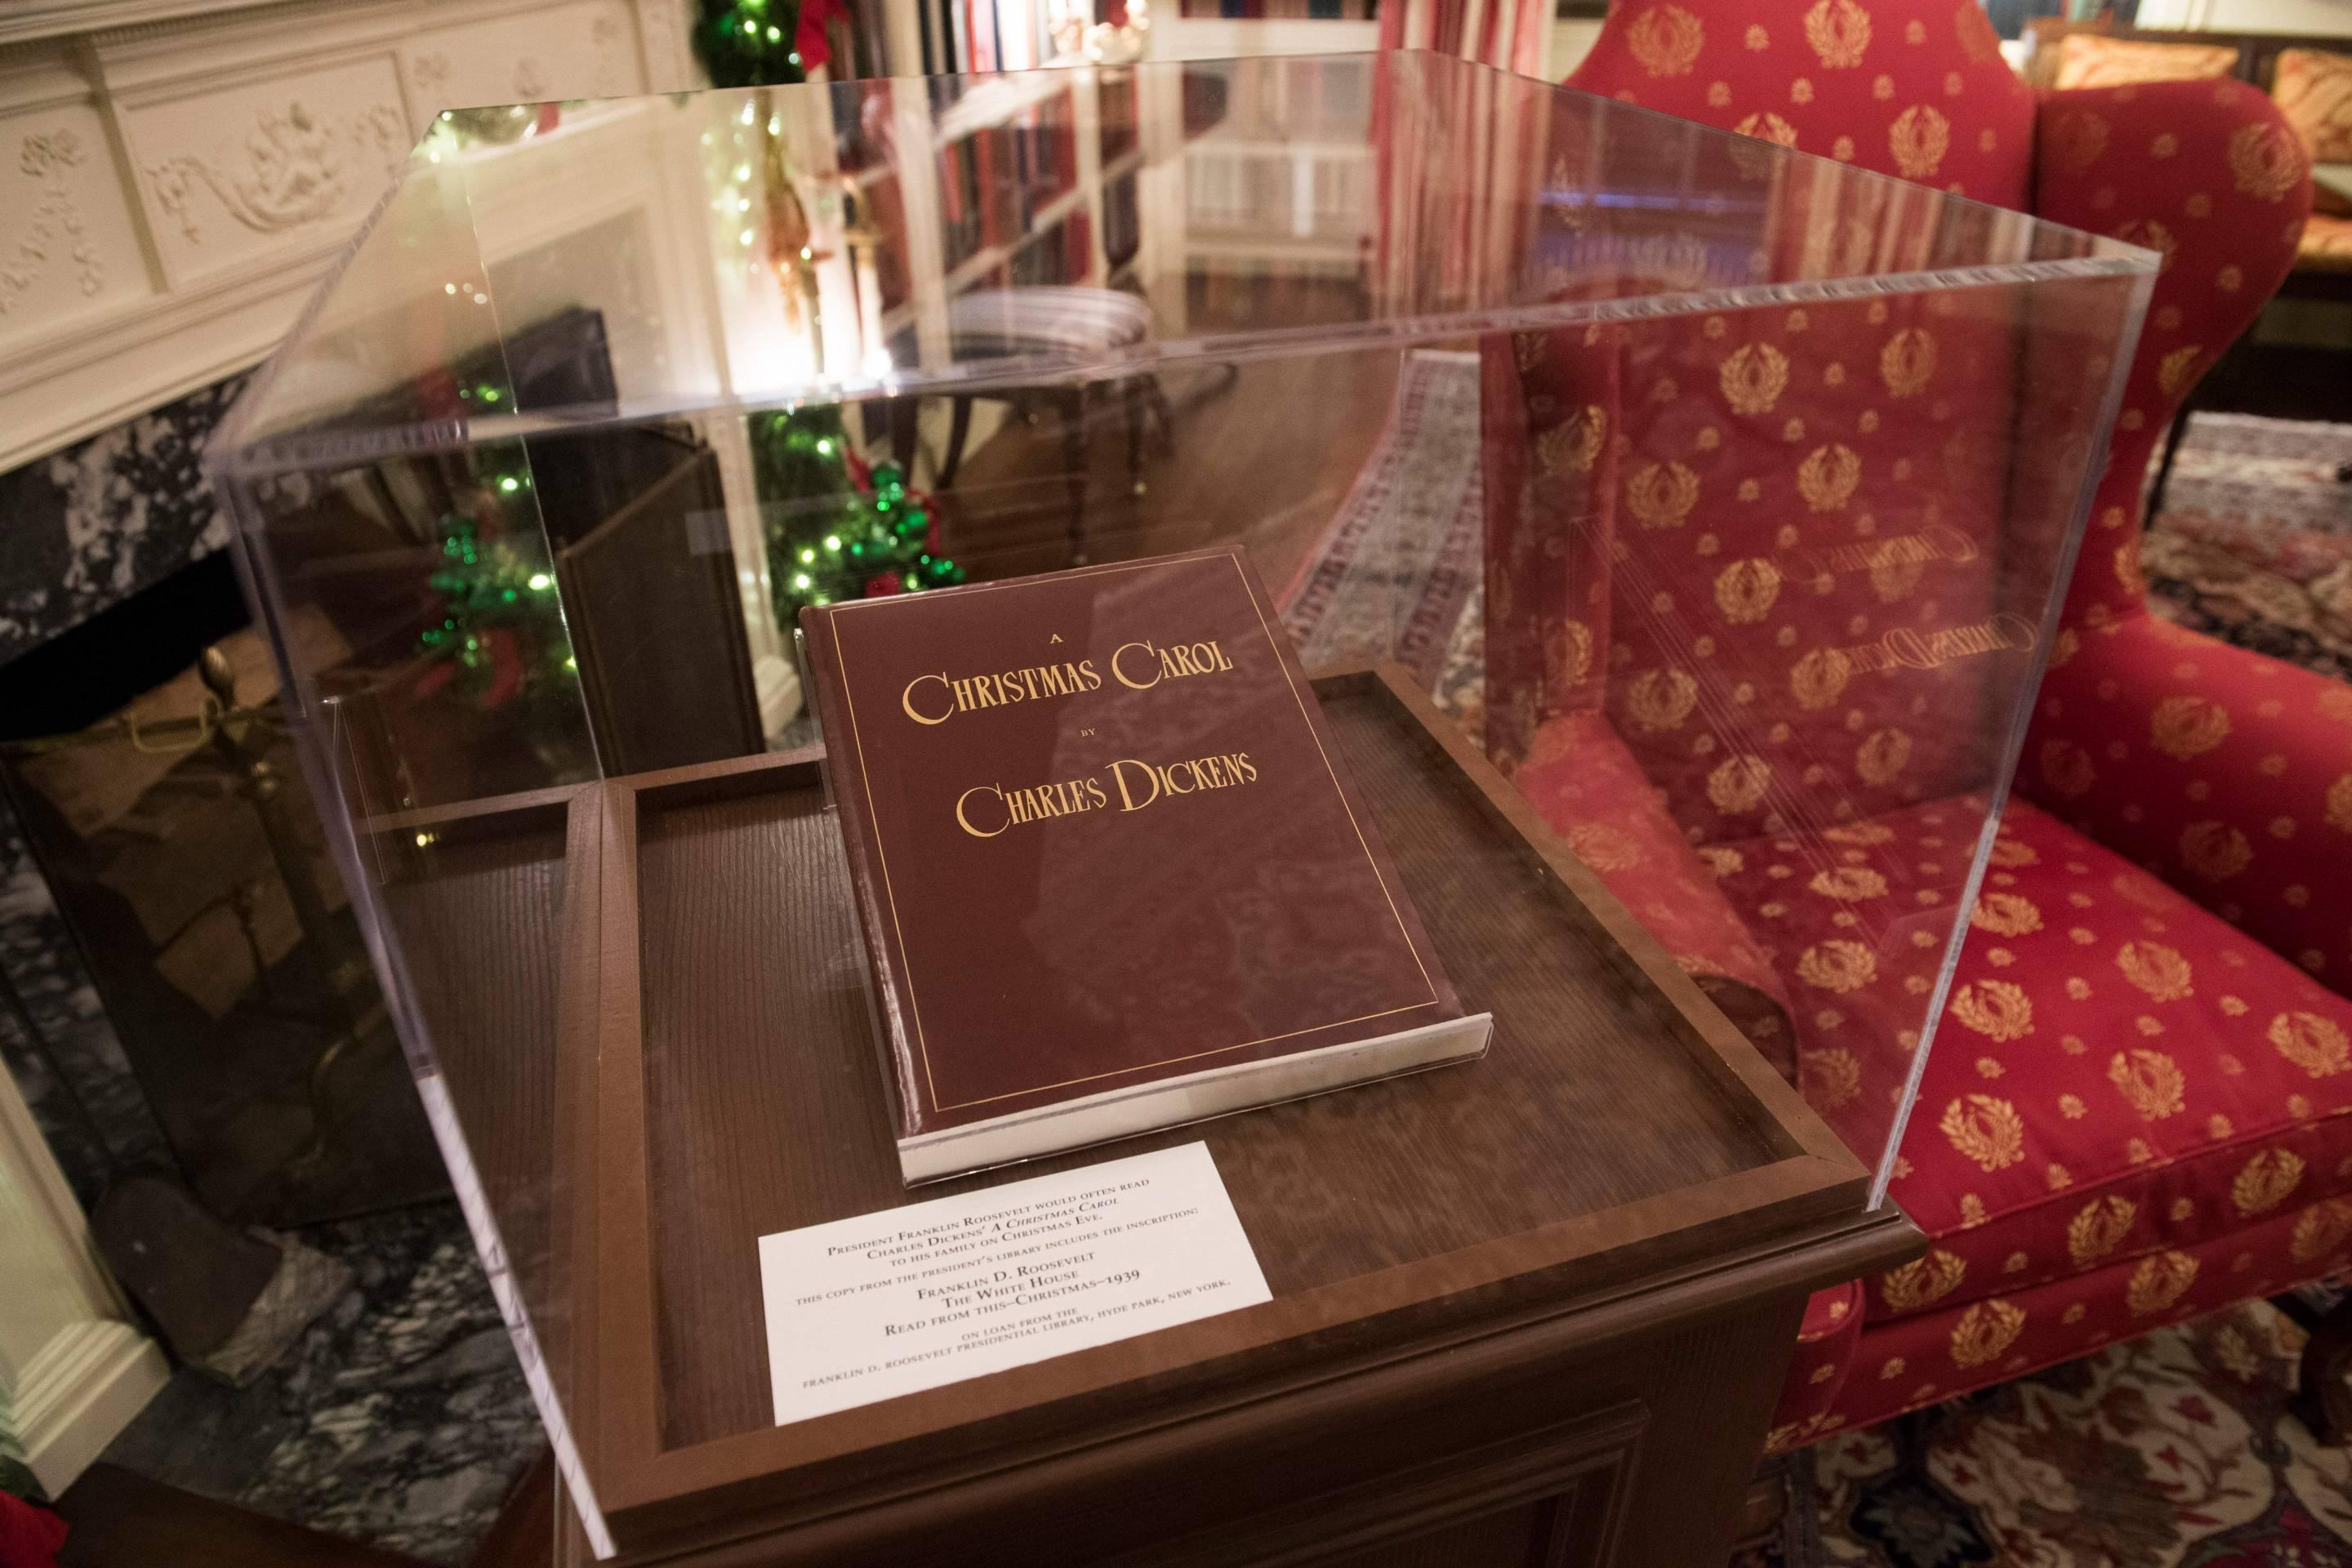 Who Wrote A Christmas Carol.Charles Dickens Wrote Some Other Christmas Books Too